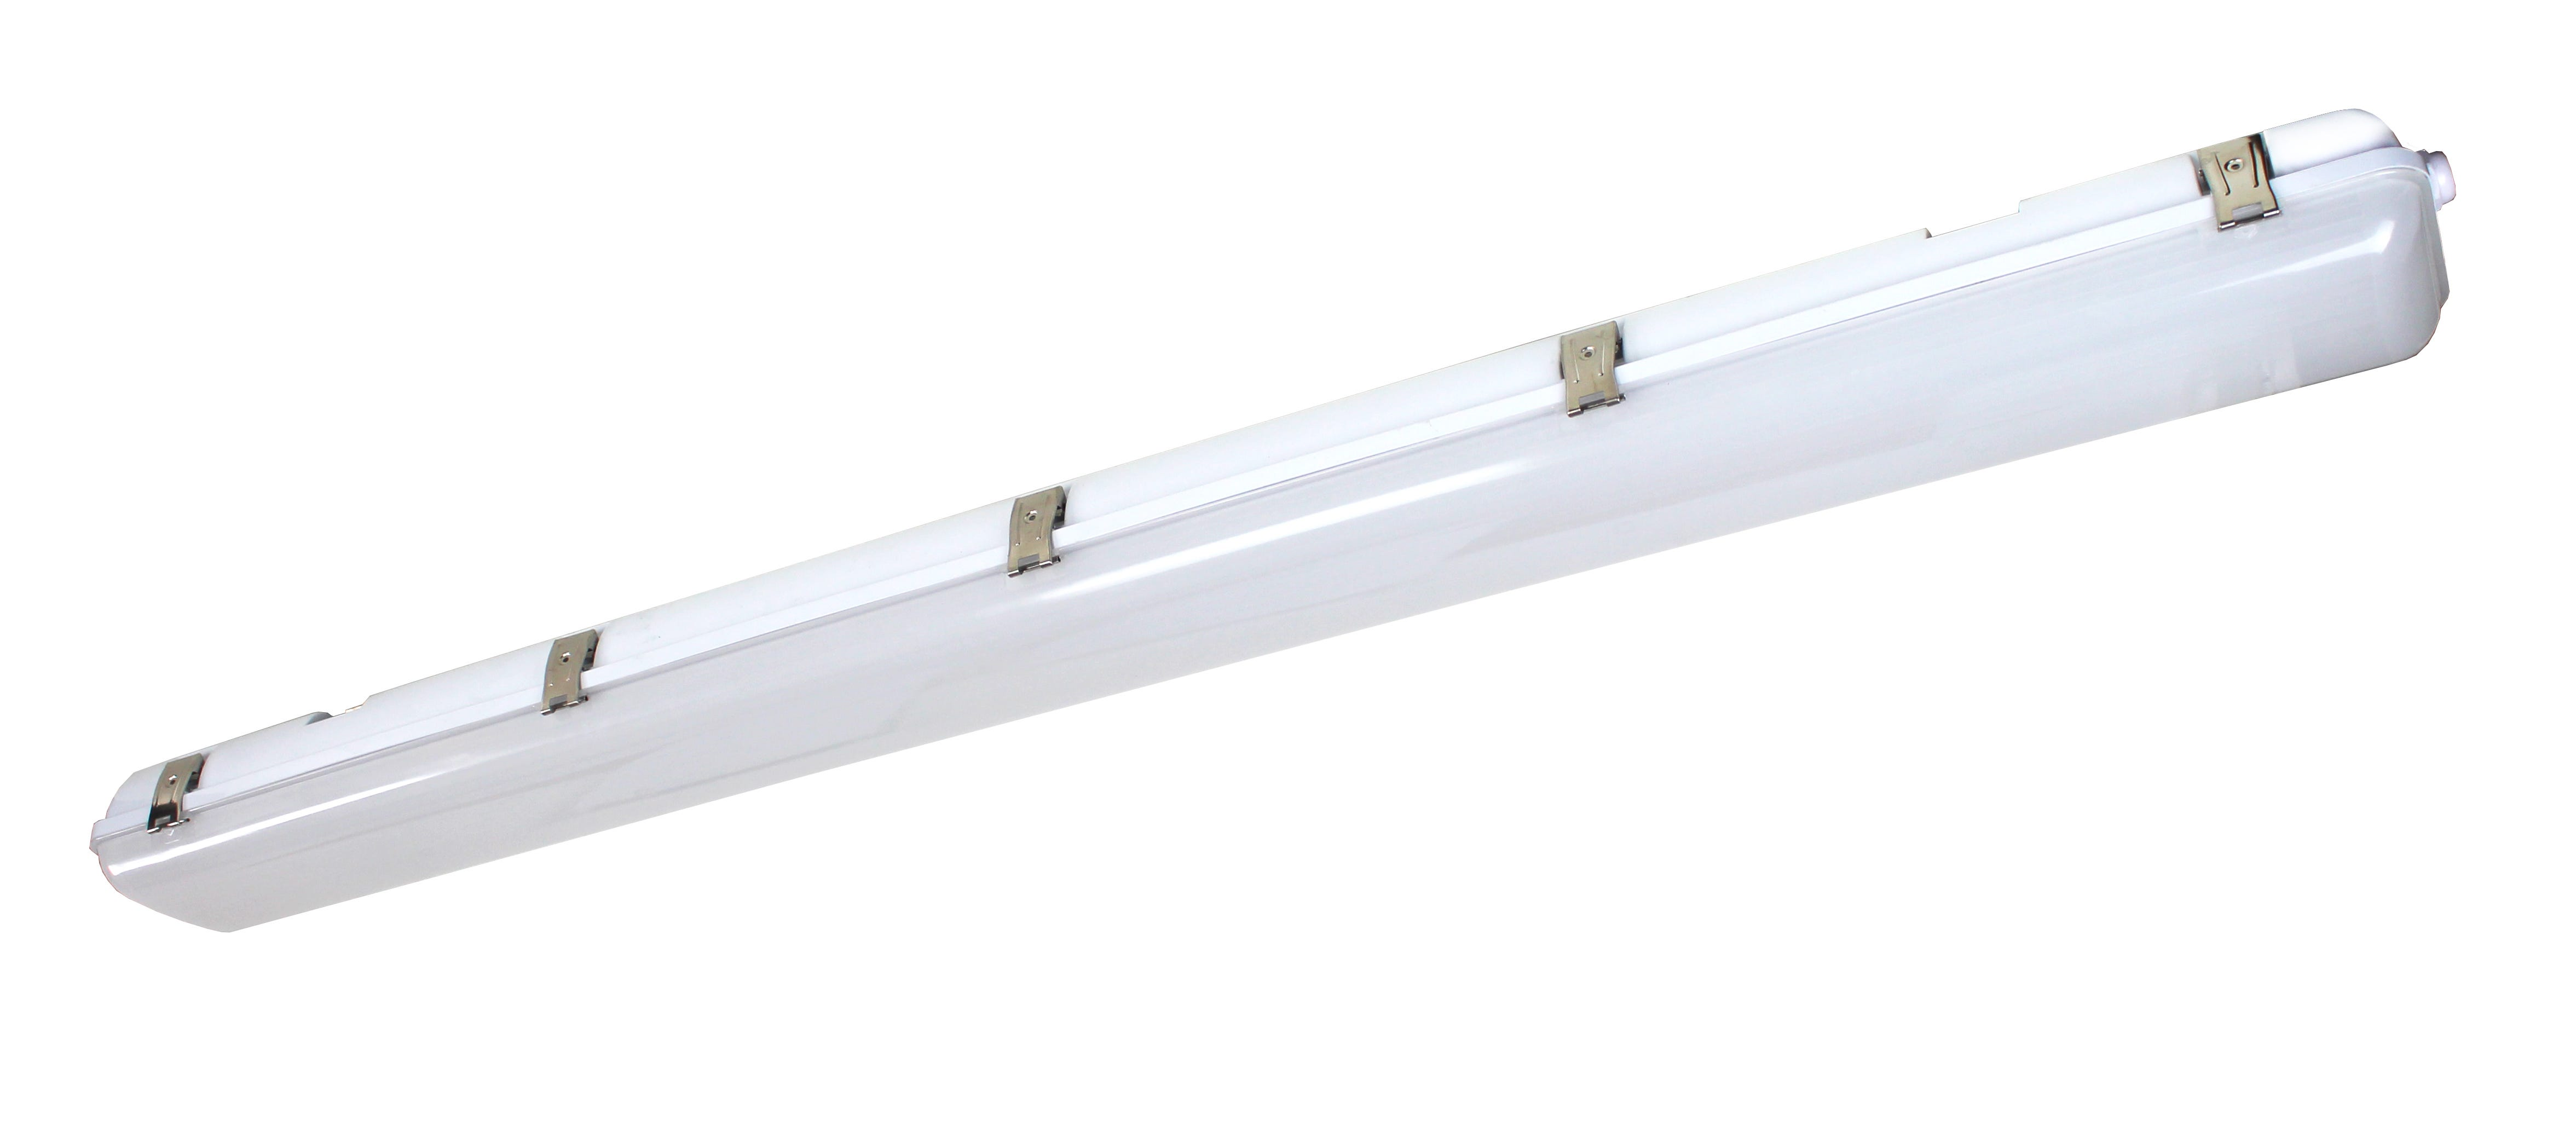 Bright Source LED Luminaires - IP65